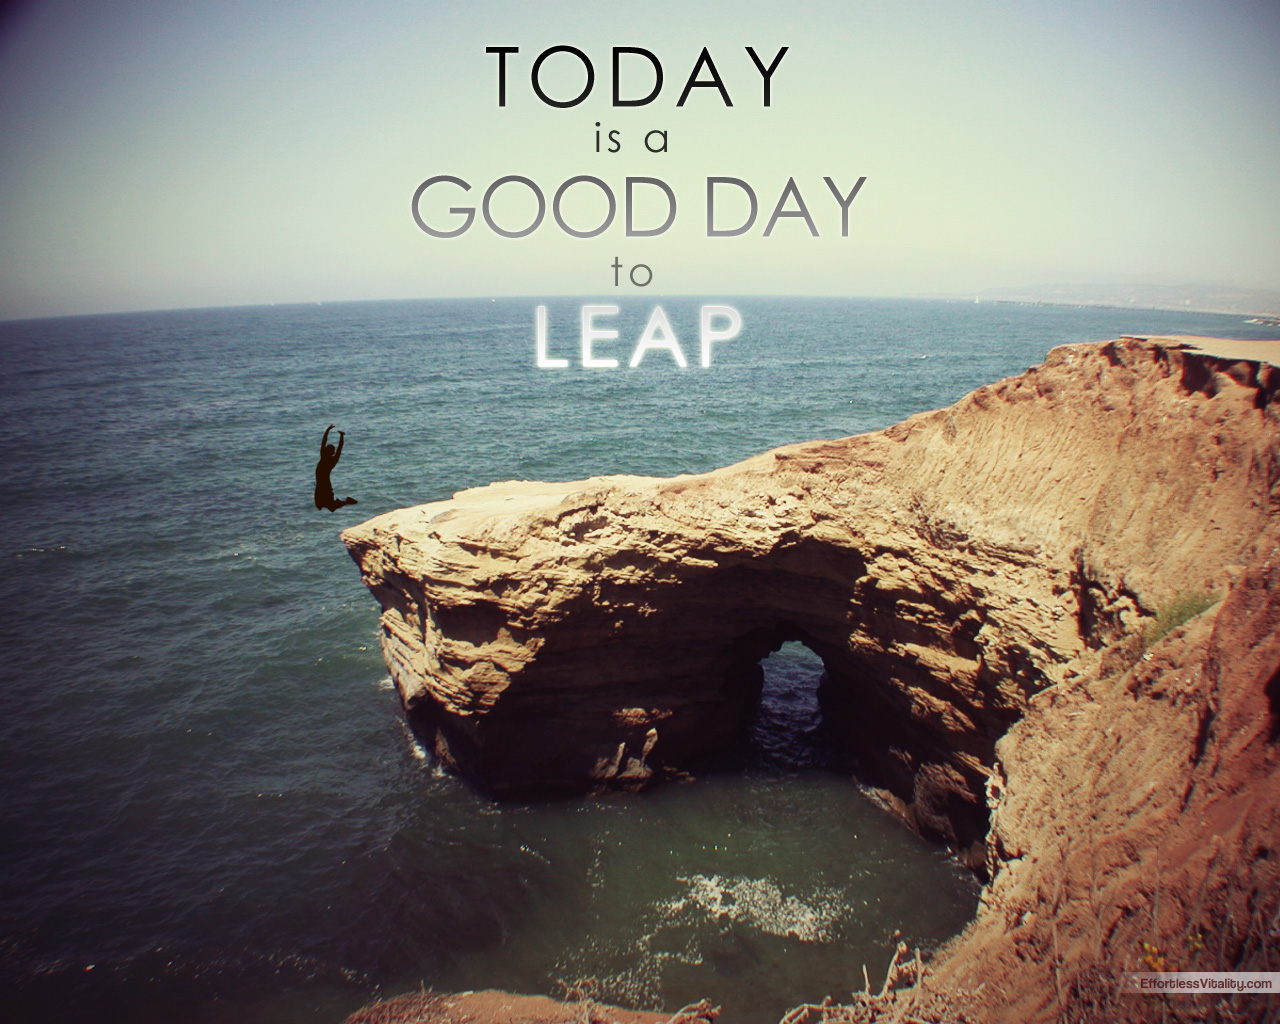 Today is a Good Day To Leap inspirational wallpaper